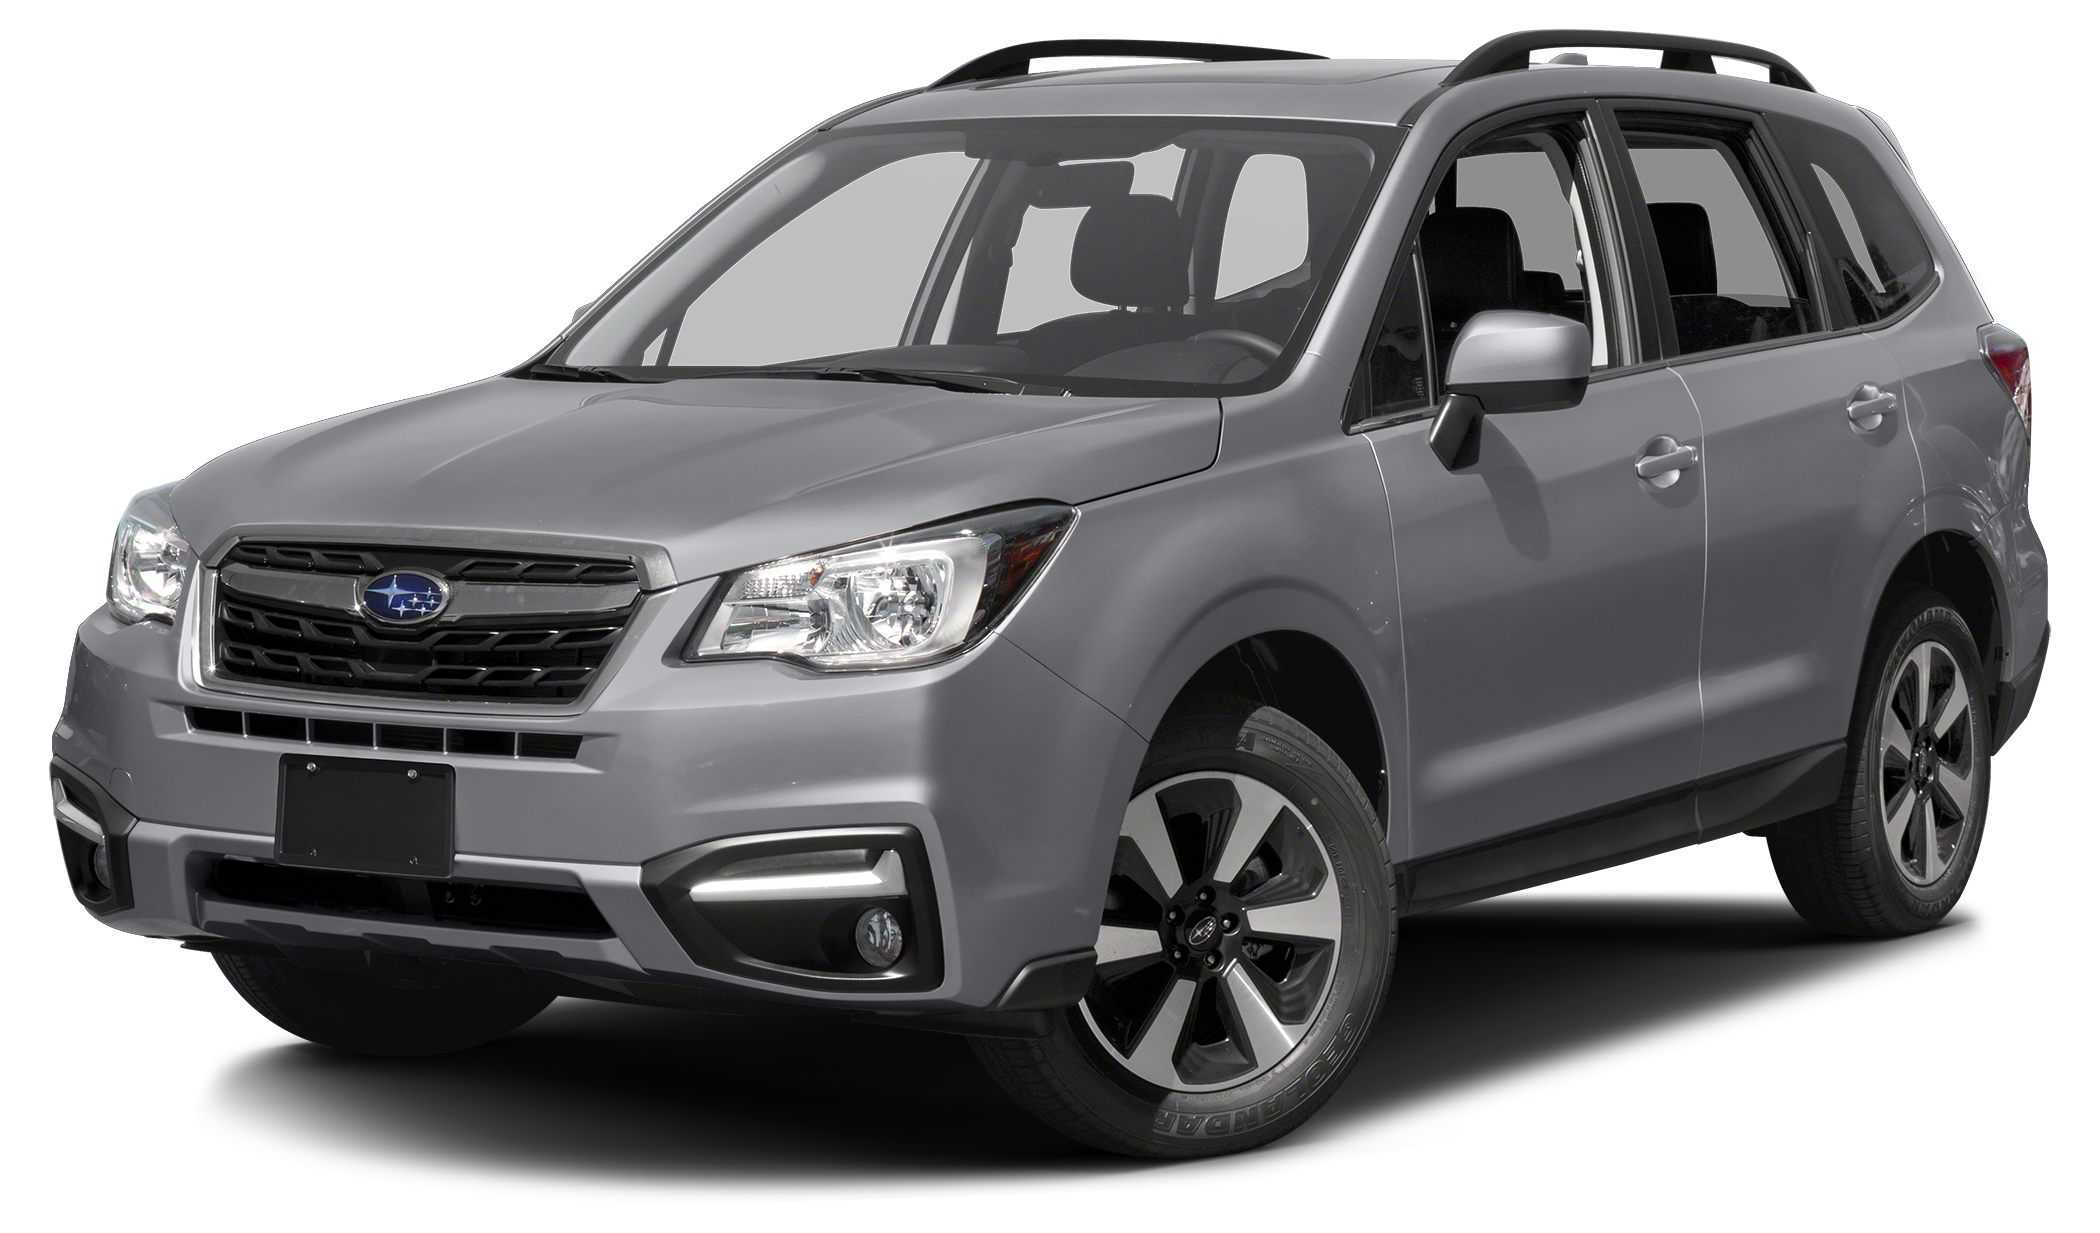 2017 subaru forester for sale in sacramento ca. Black Bedroom Furniture Sets. Home Design Ideas